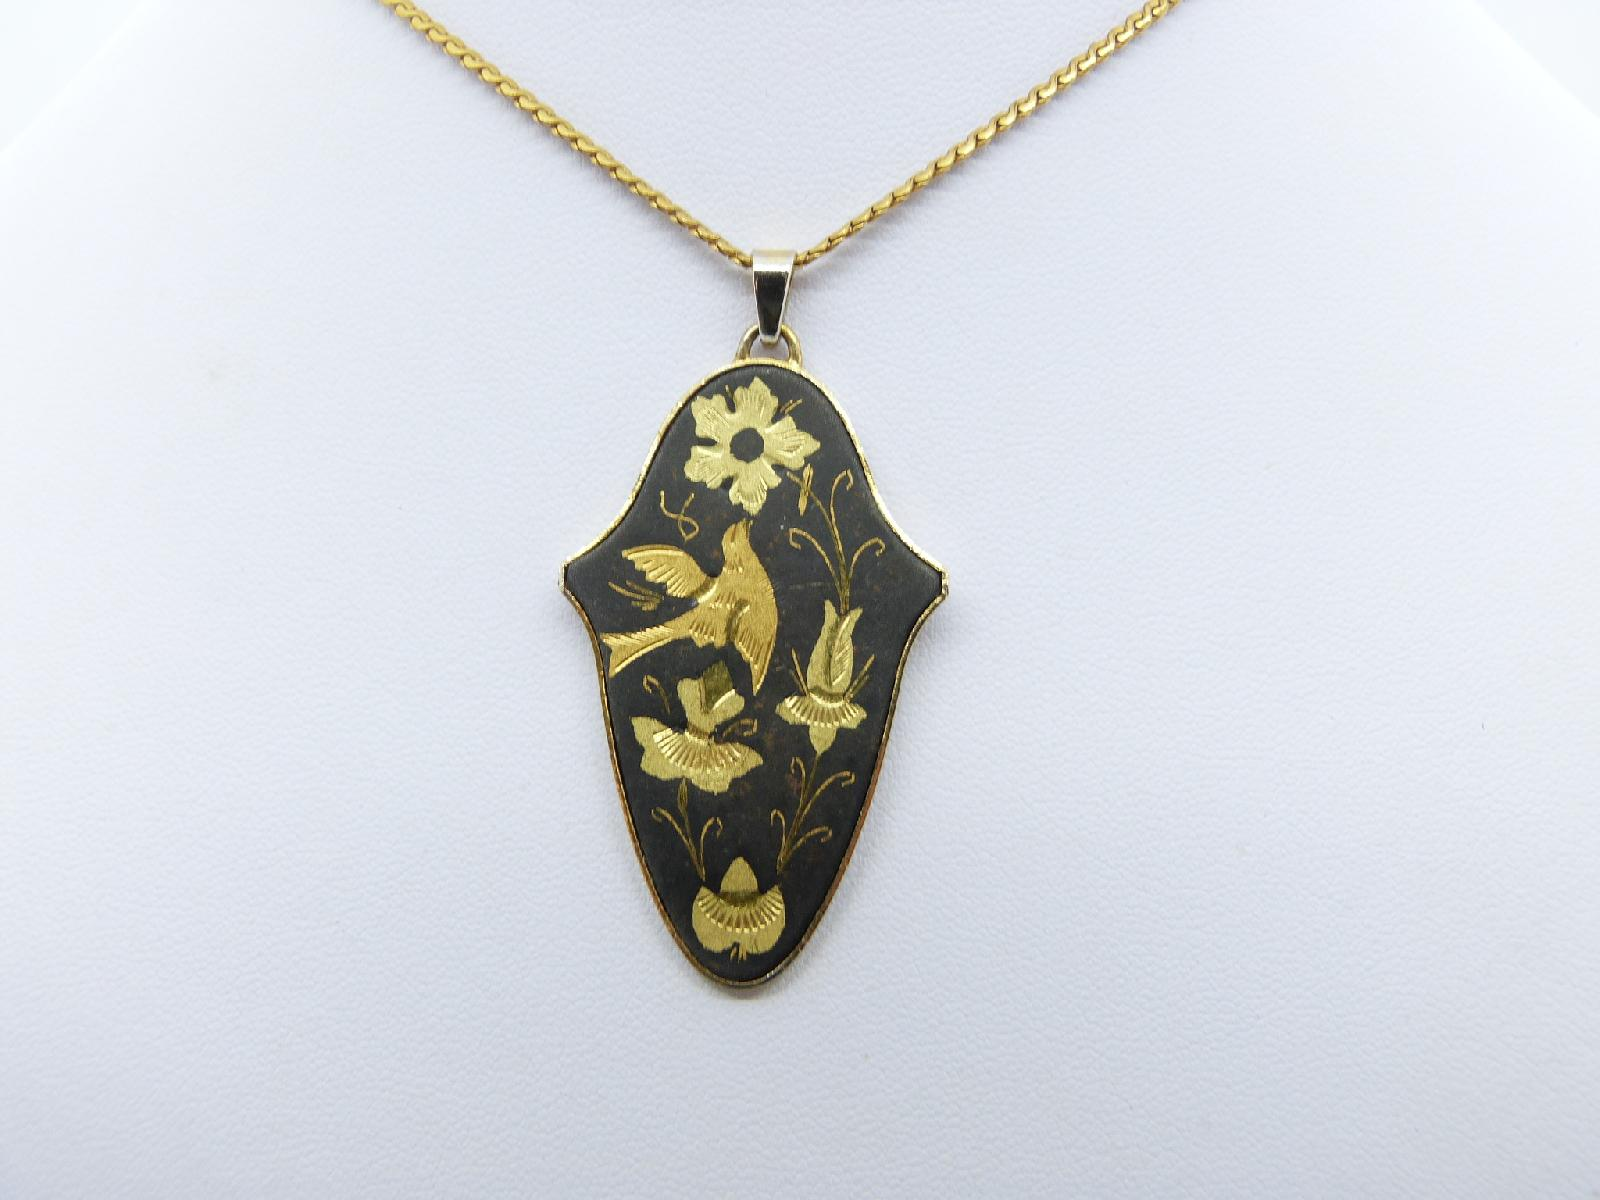 £25.00 - Vintage 70s Japanese Black and Goldplated Bird and Flowers Pendant Necklace